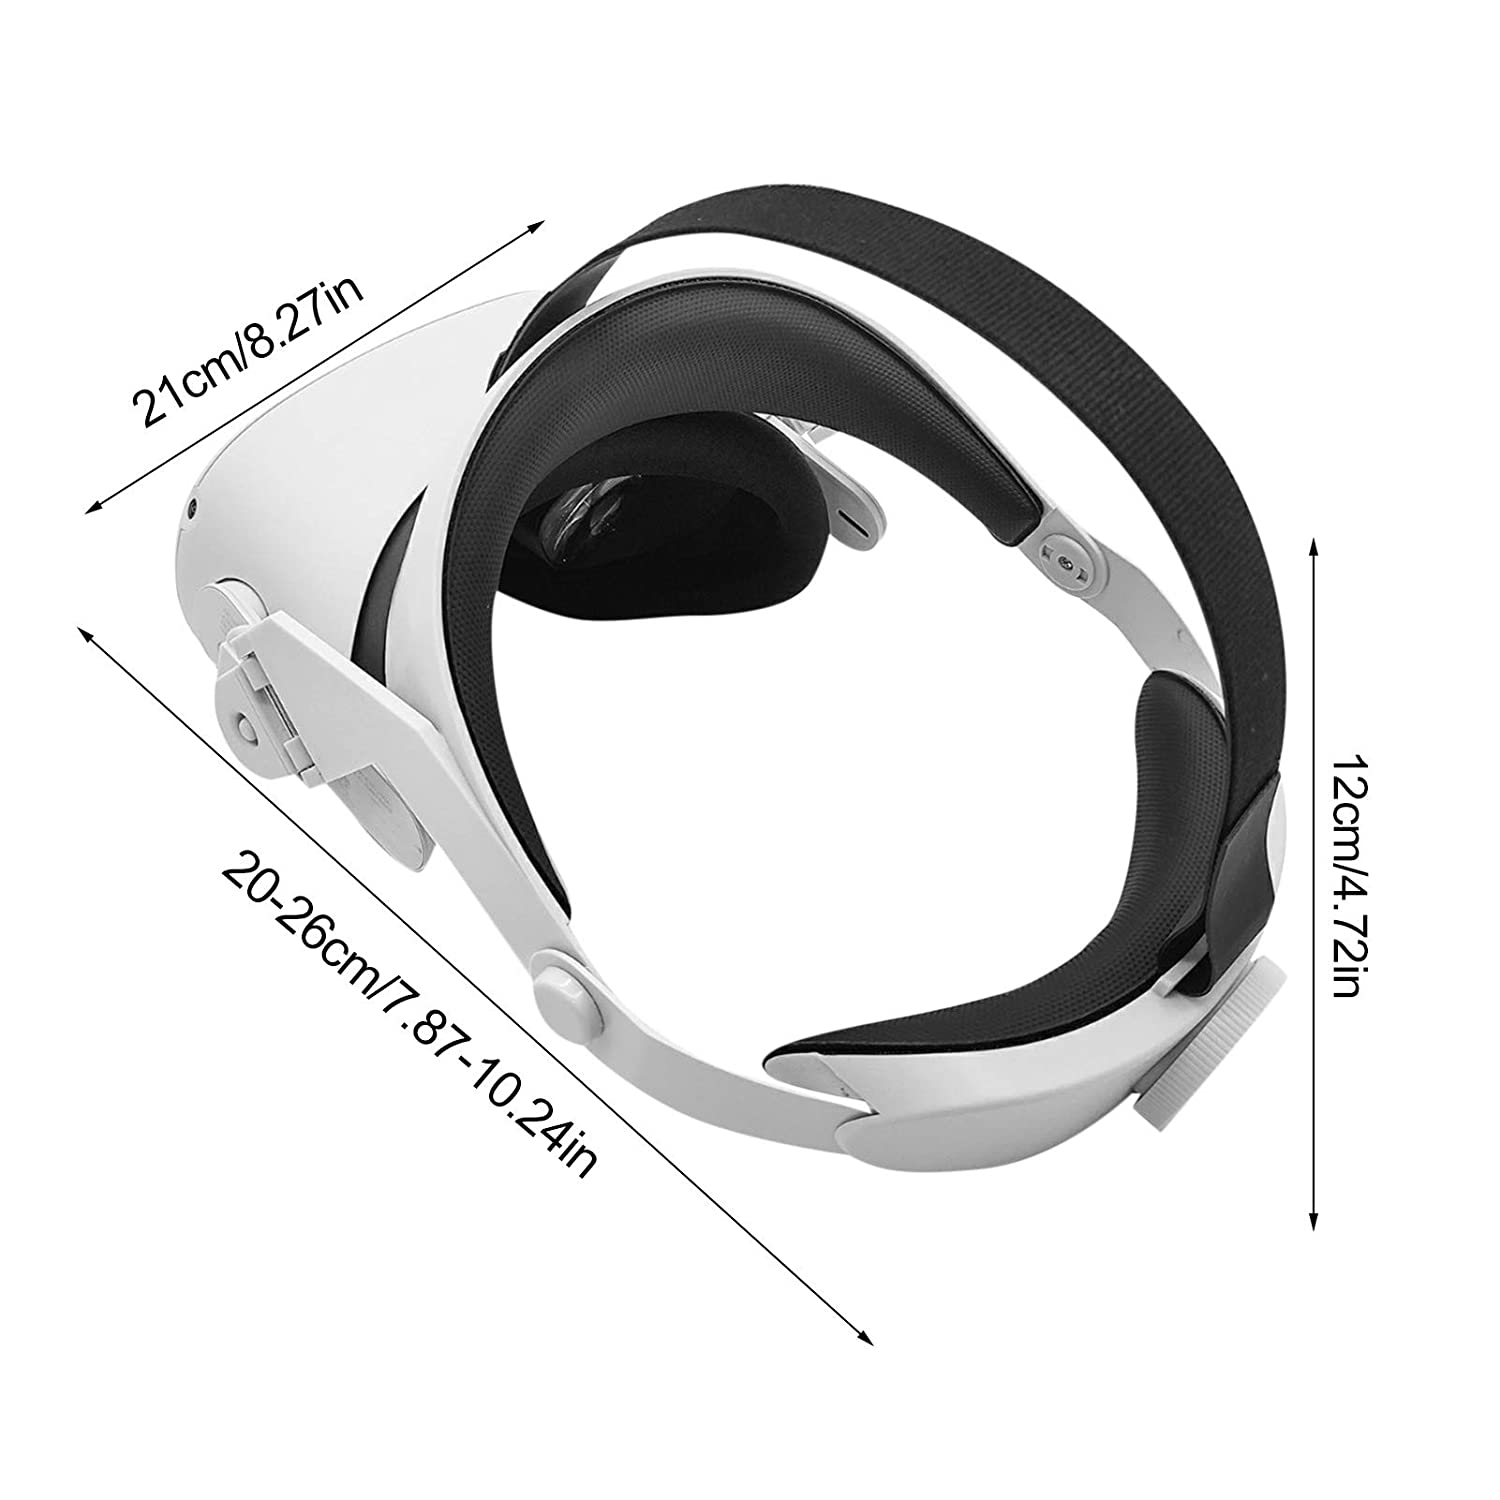 Replacement Halo Strap for Oculus Quest 2 Strap Headband VR Glasses Headset Support for Quest 2 Accessories enlarge